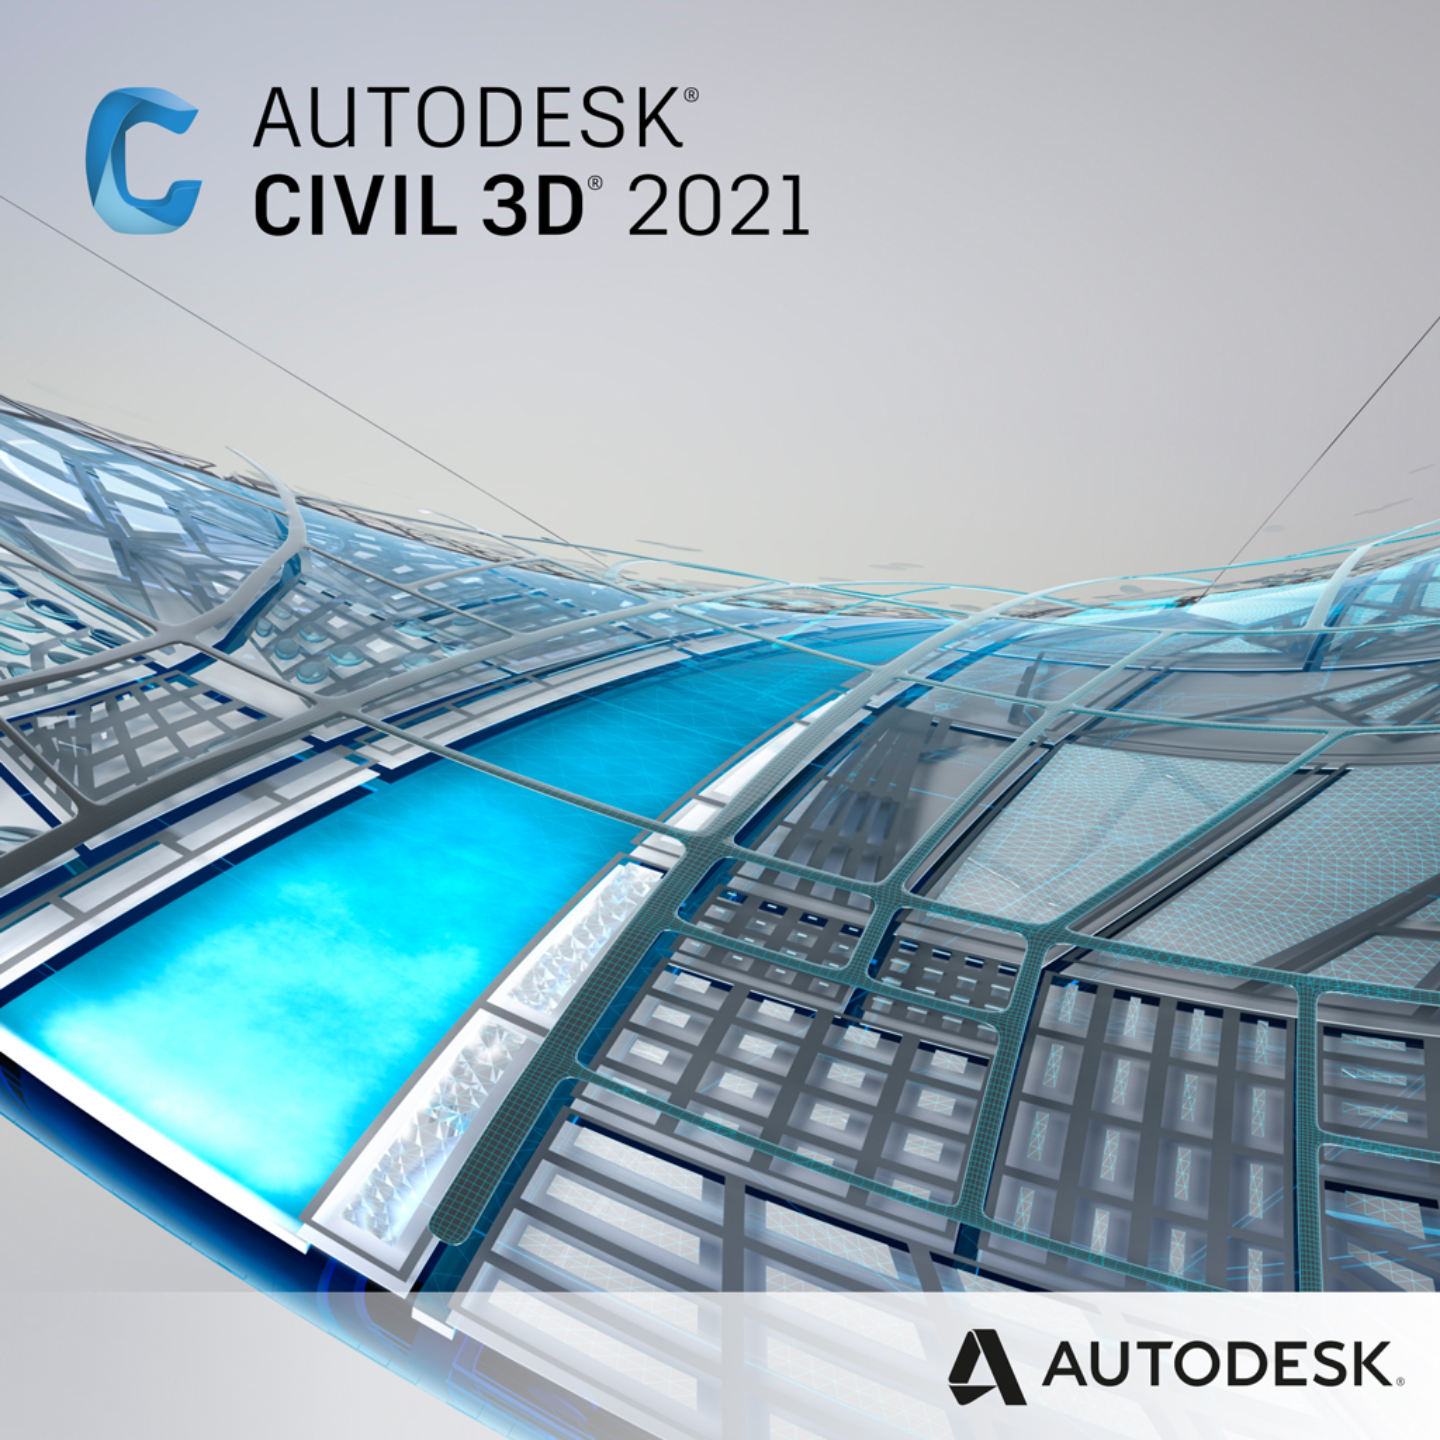 Autodesk AutoCAD Civil 3D 2021 Commercial 1-Year Subscription